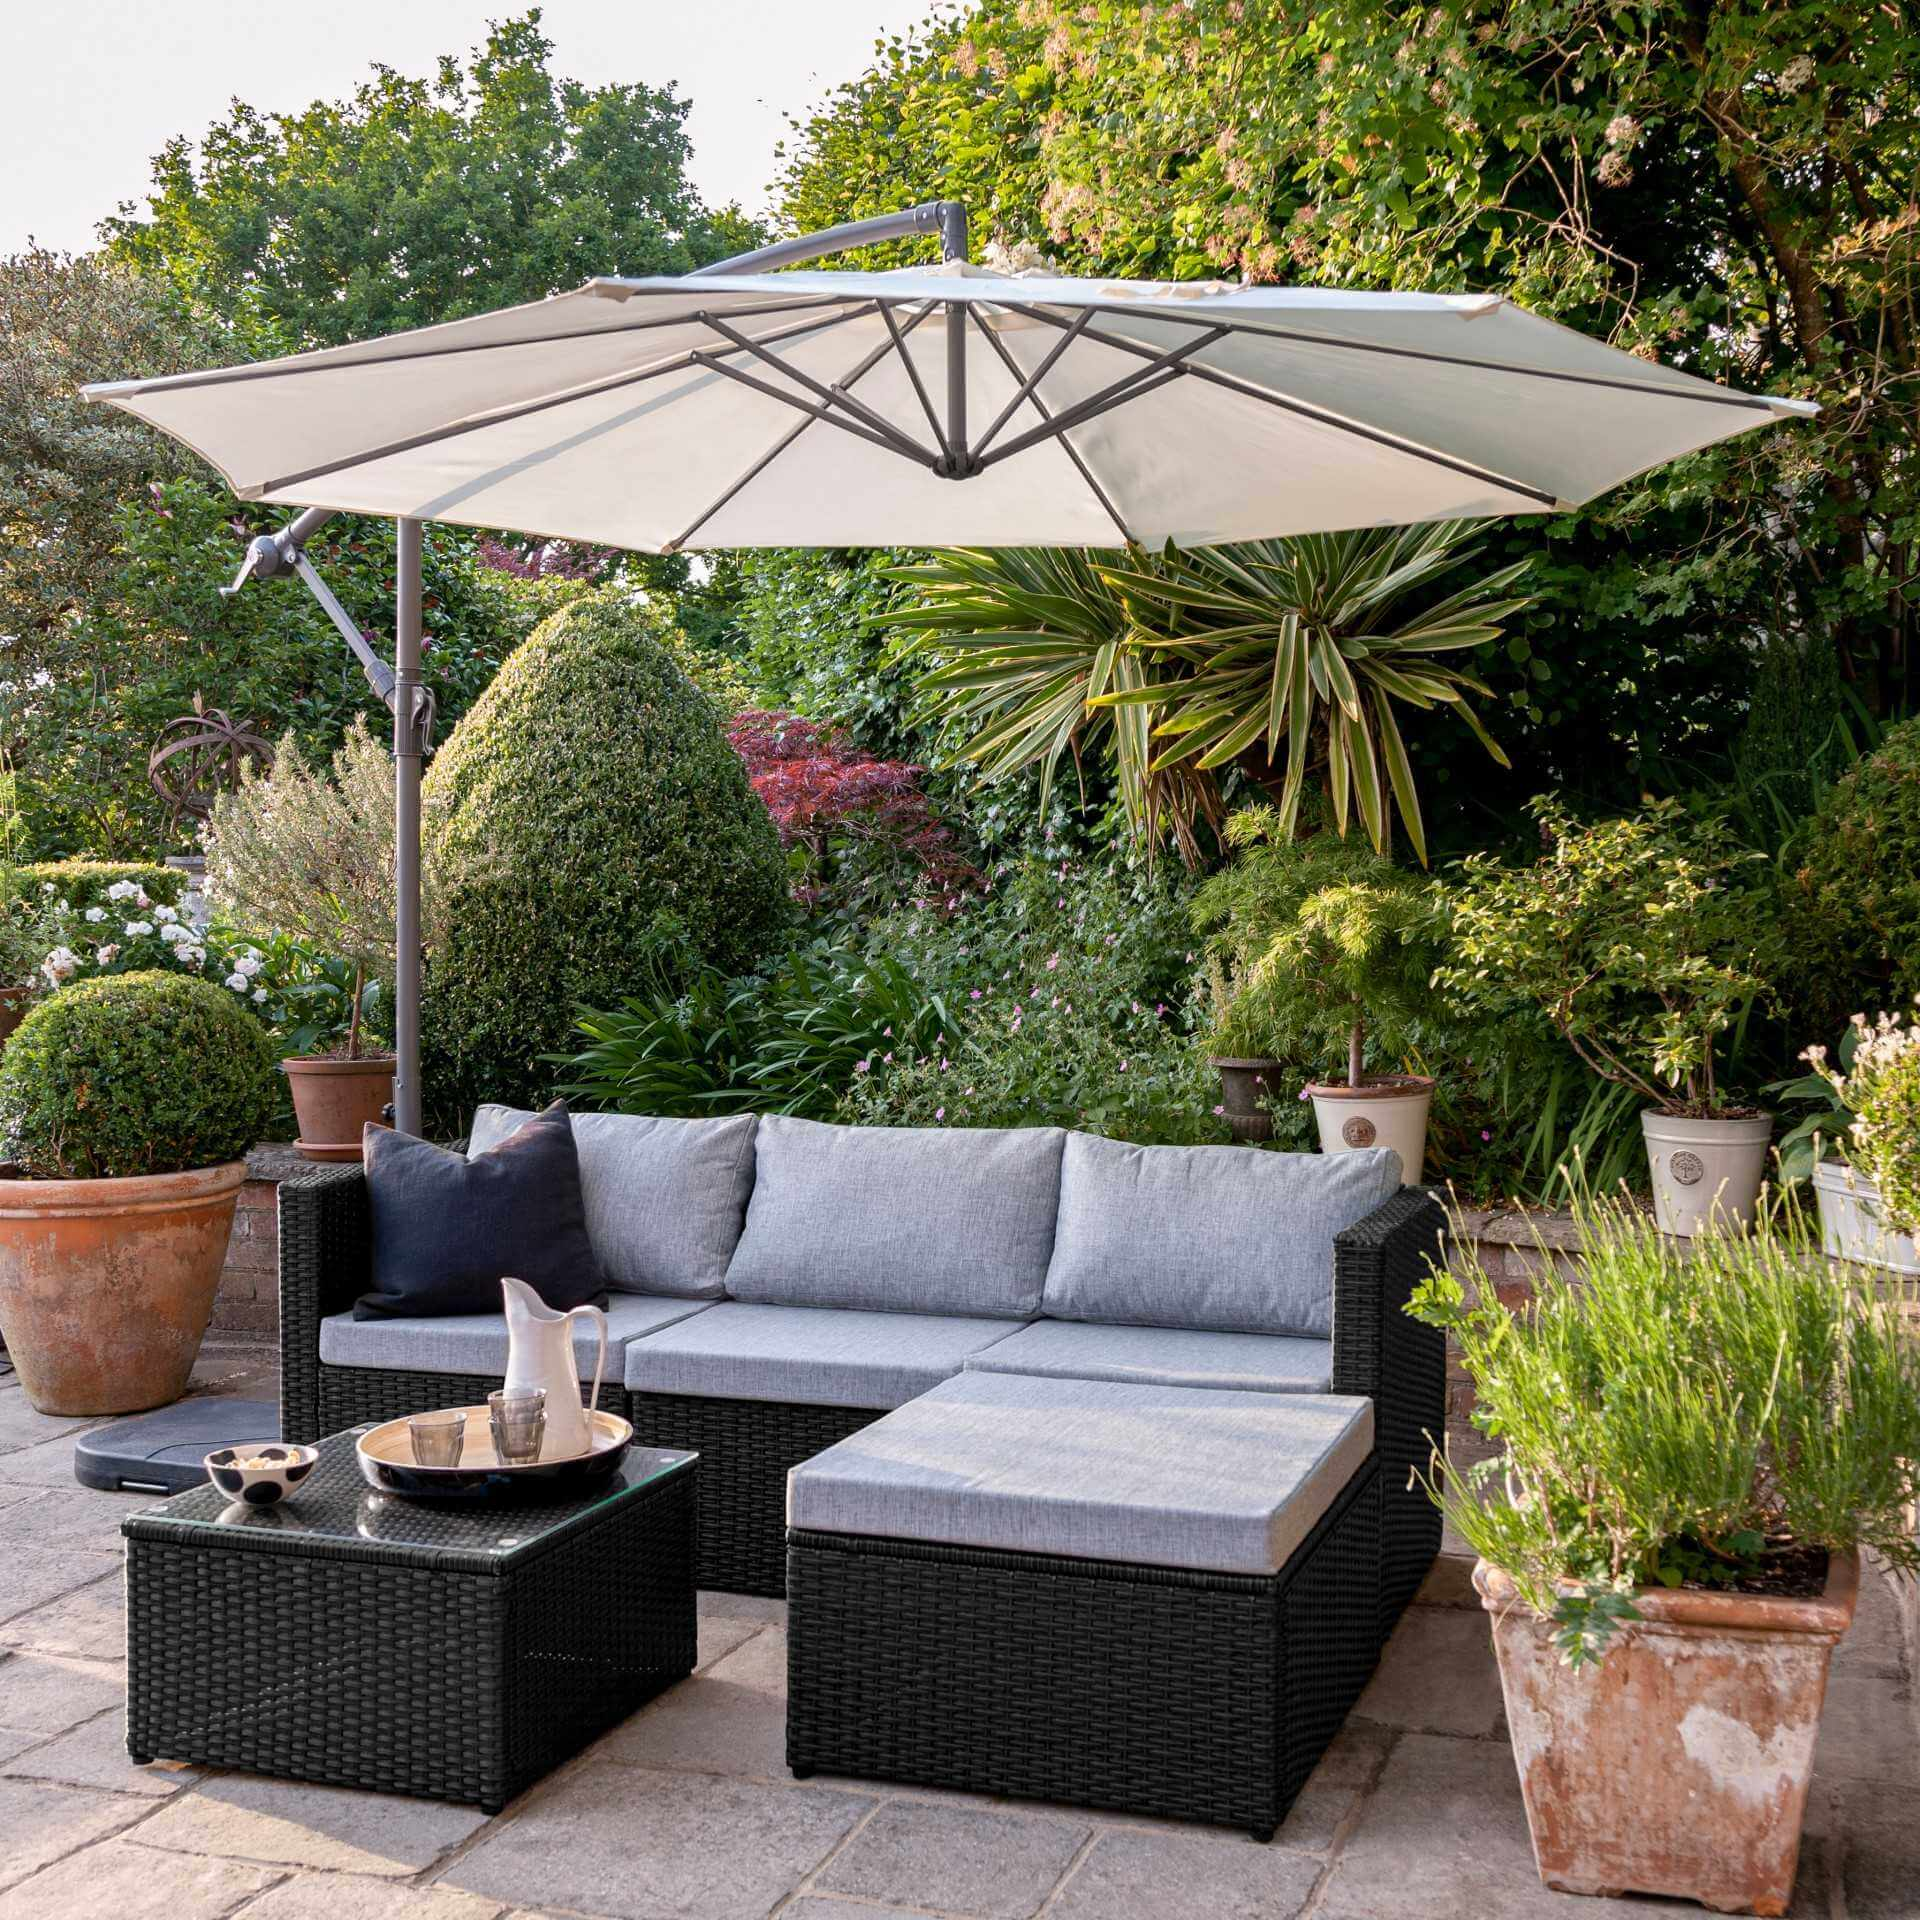 4 Seater Rattan Corner Sofa Set with Lean Over Parasol and Base - Black Weave - Laura James